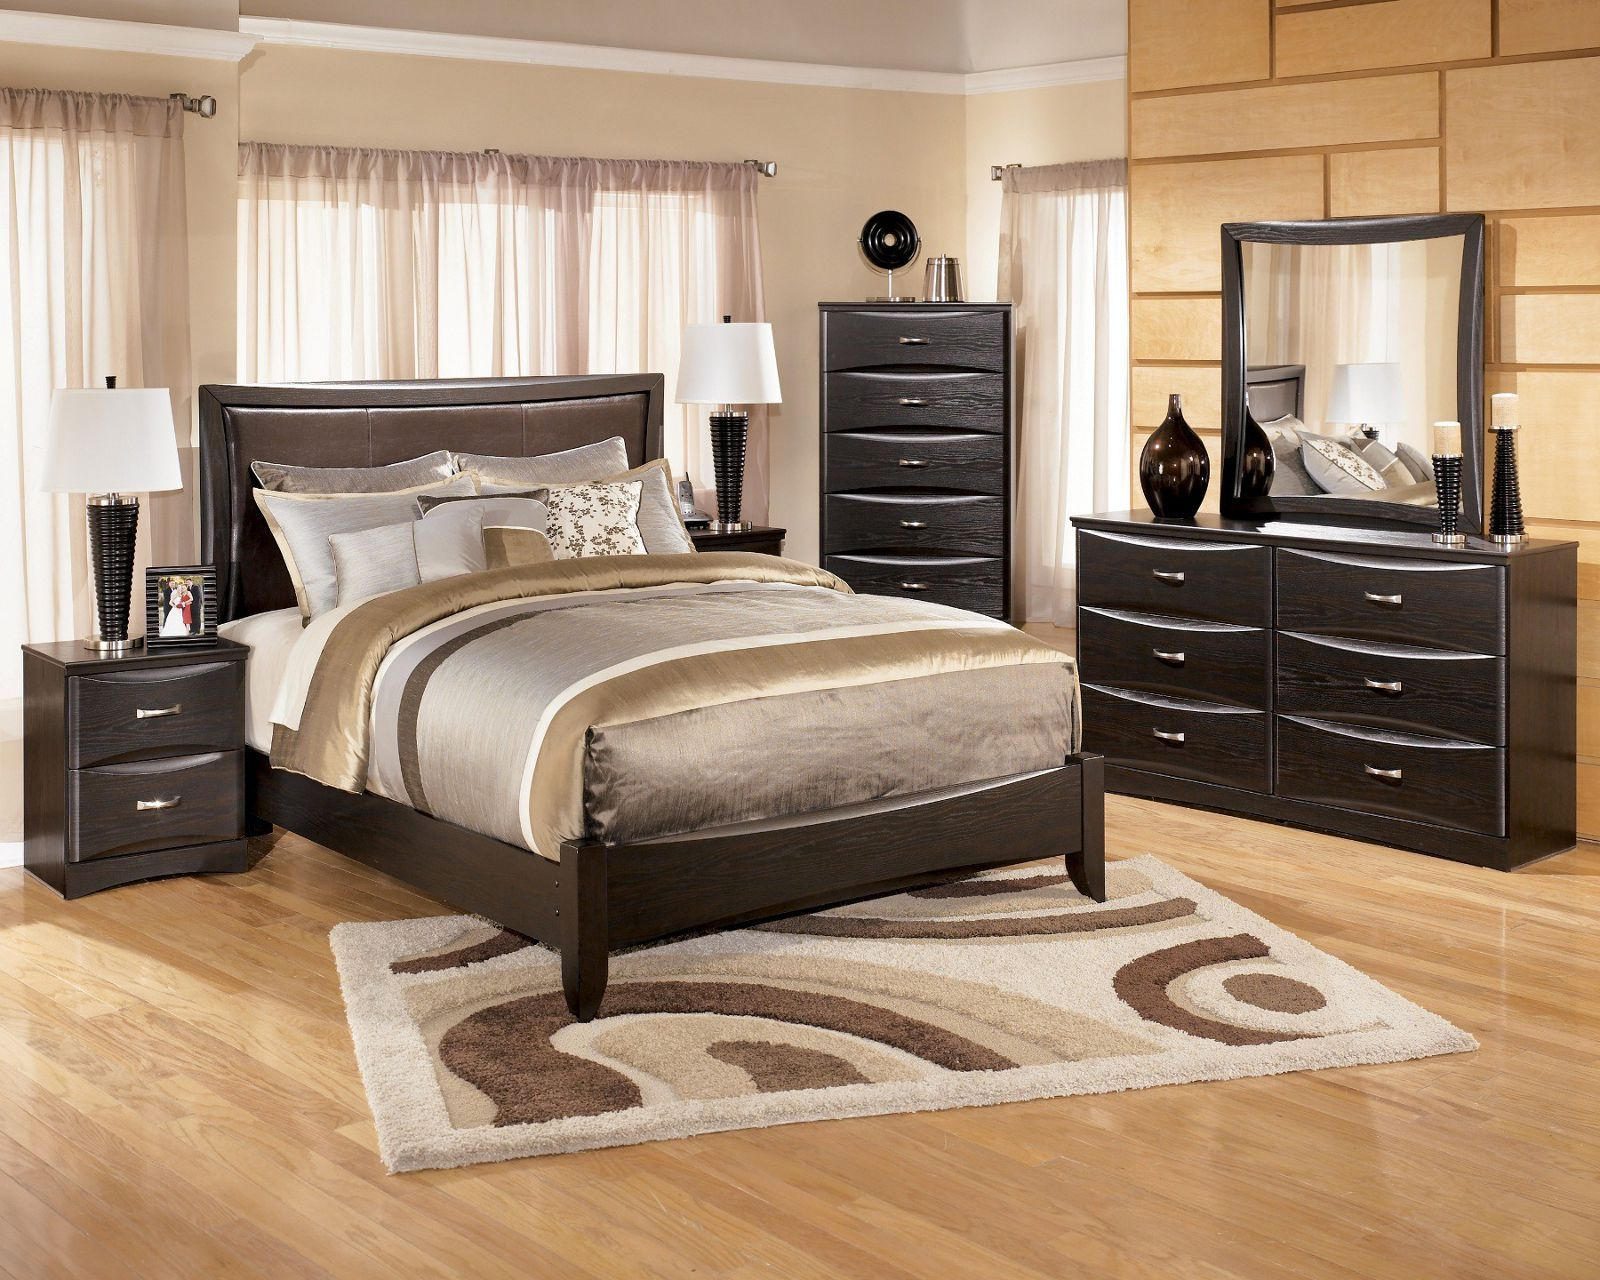 Ashley Furniture Bedroom Sets New in Home Decorating Ideas